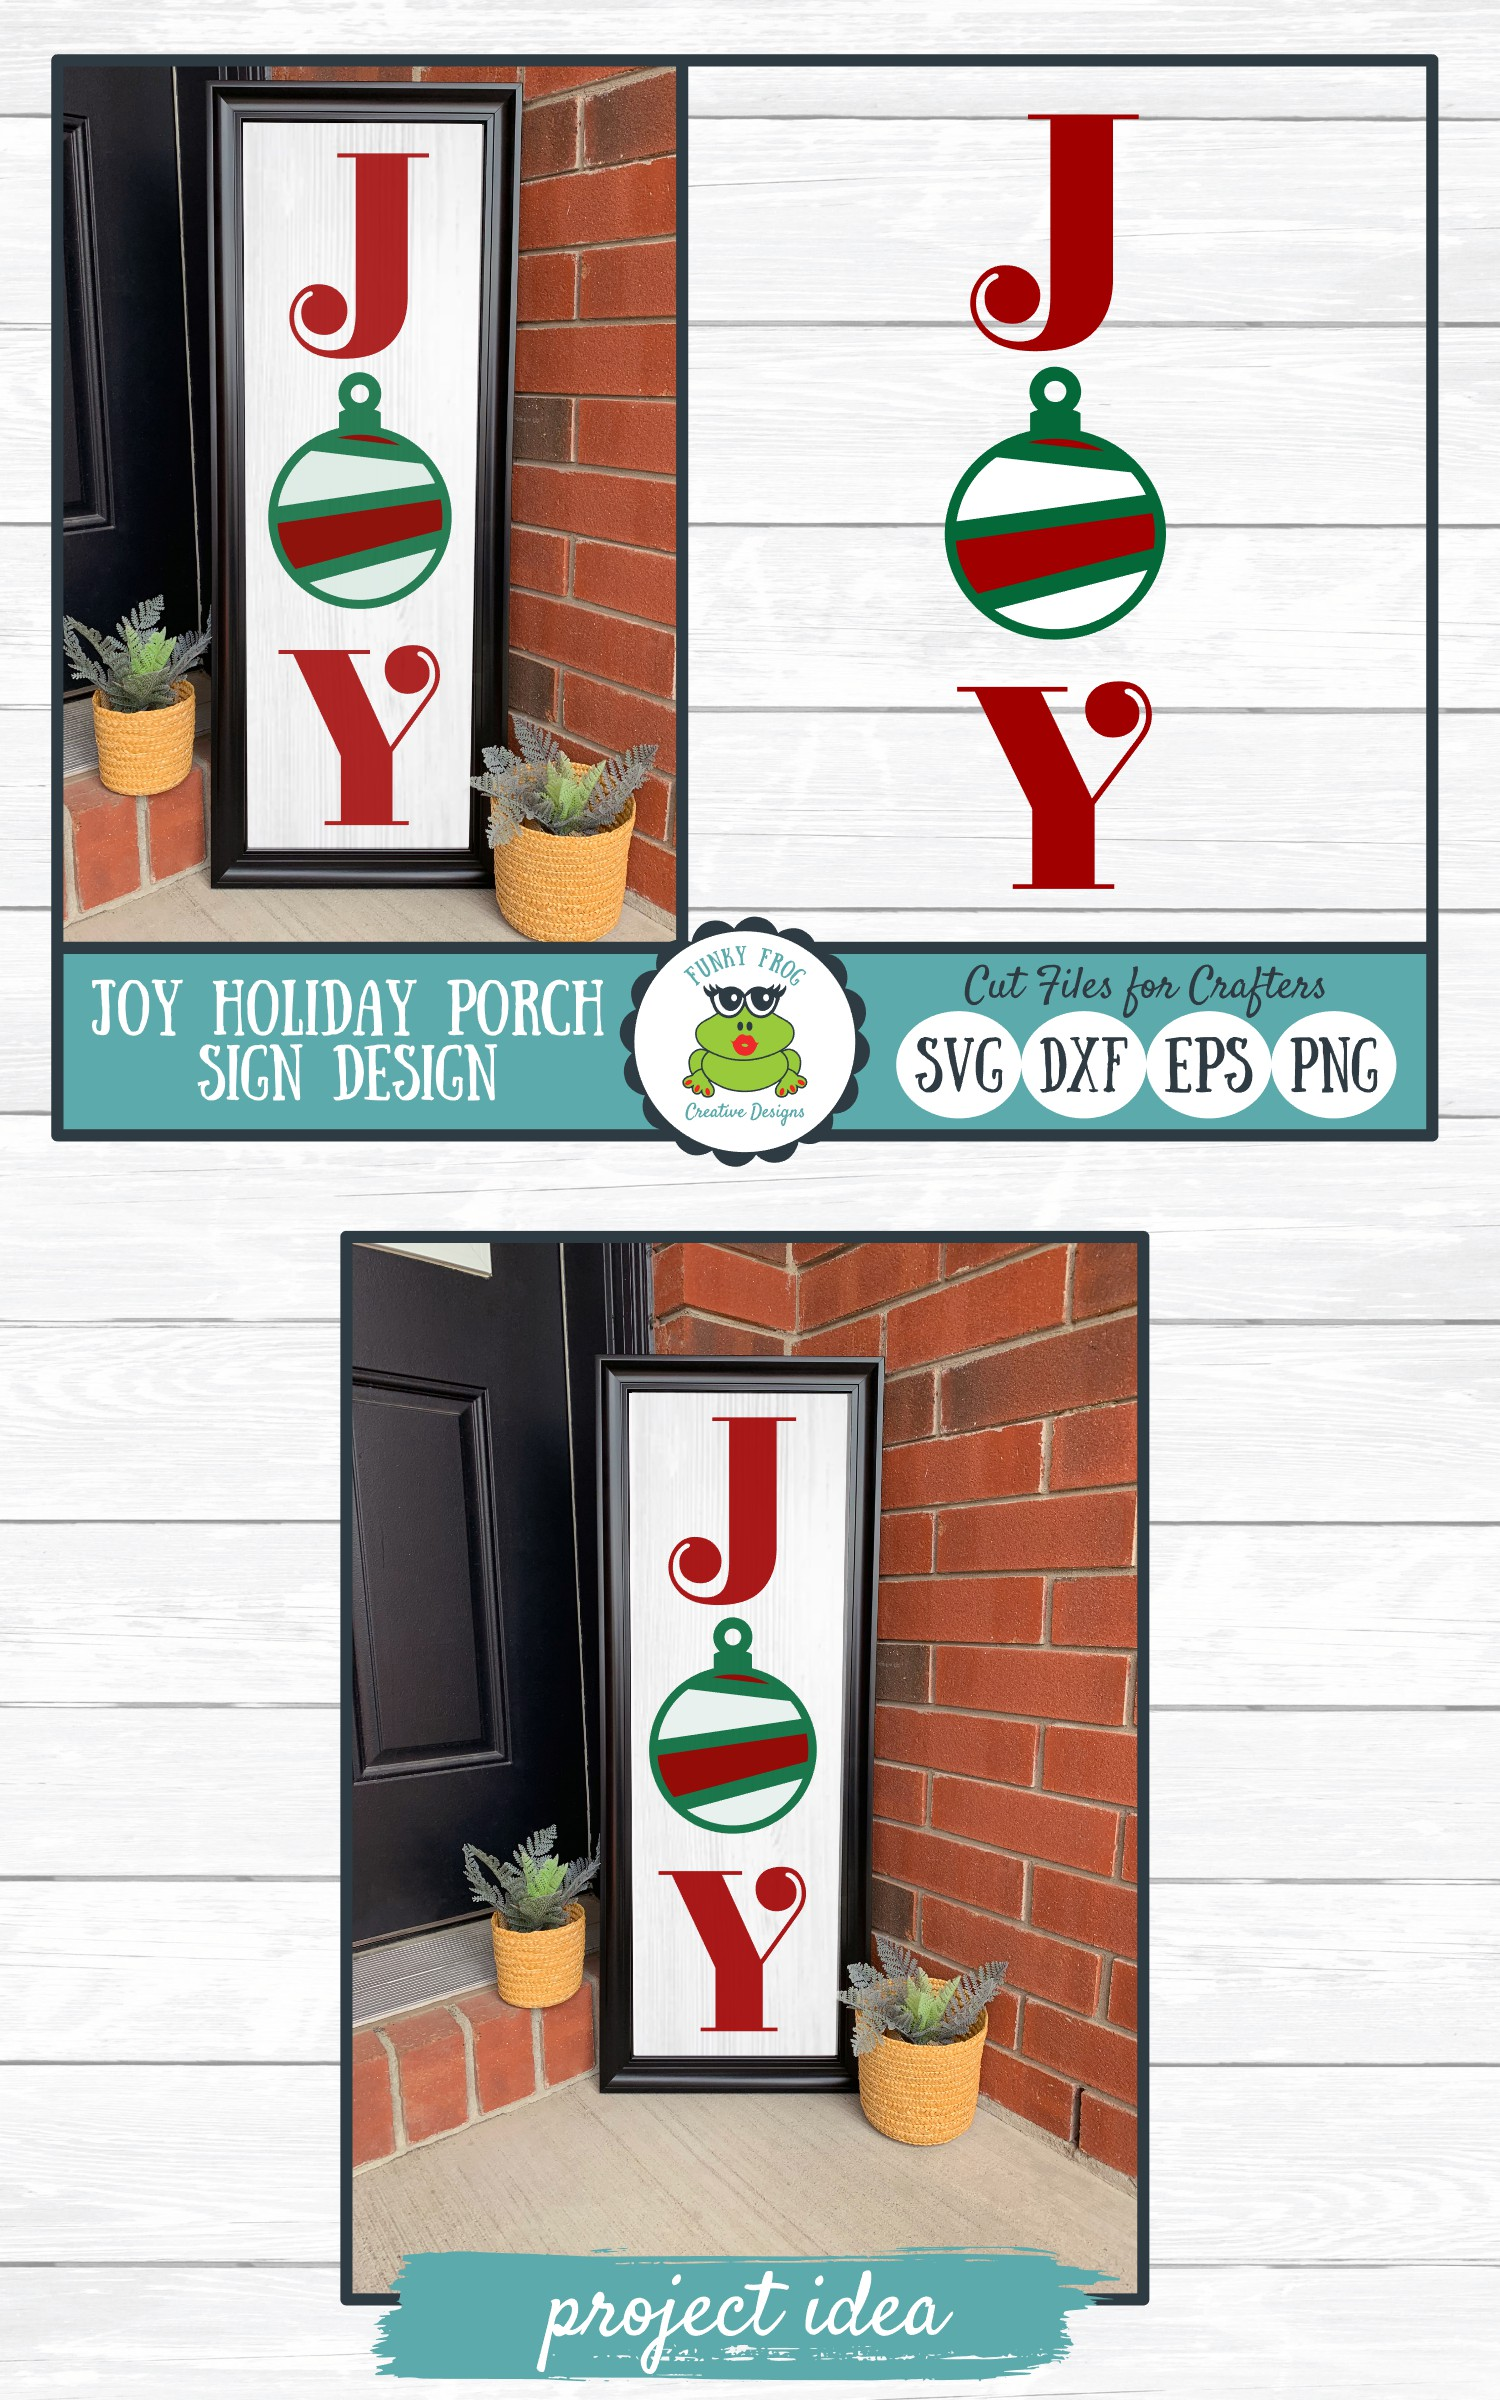 Joy Holiday Porch Sign Design, SVG Cut File for Crafters example image 4